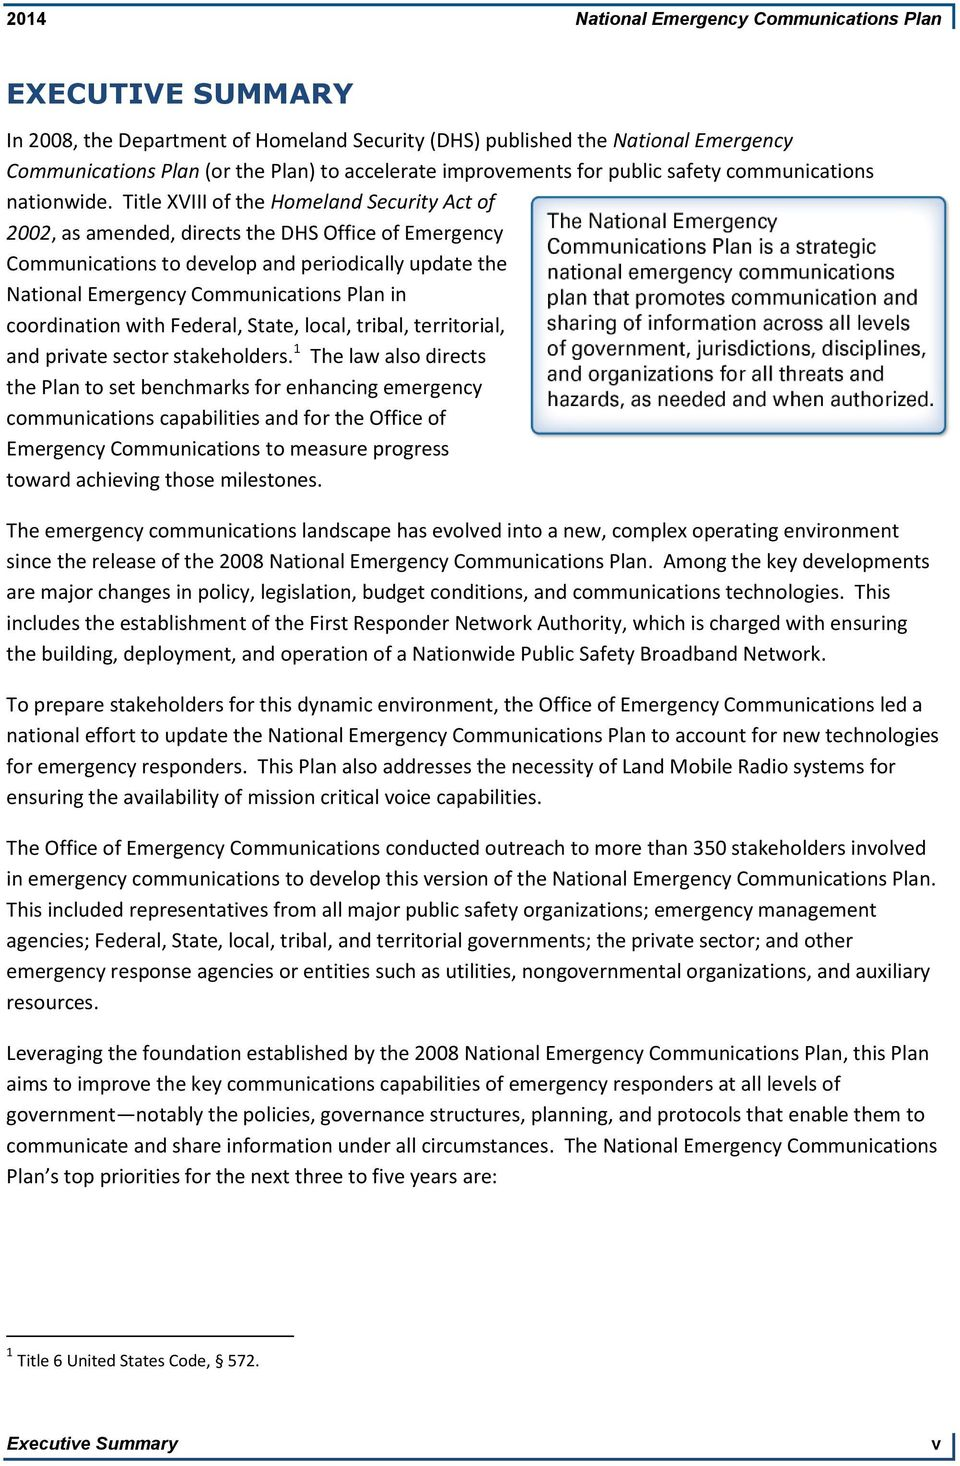 Title XVIII of the Homeland Security Act of 2002, as amended, directs the DHS Office of Emergency Communications to develop and periodically update the National Emergency Communications Plan in